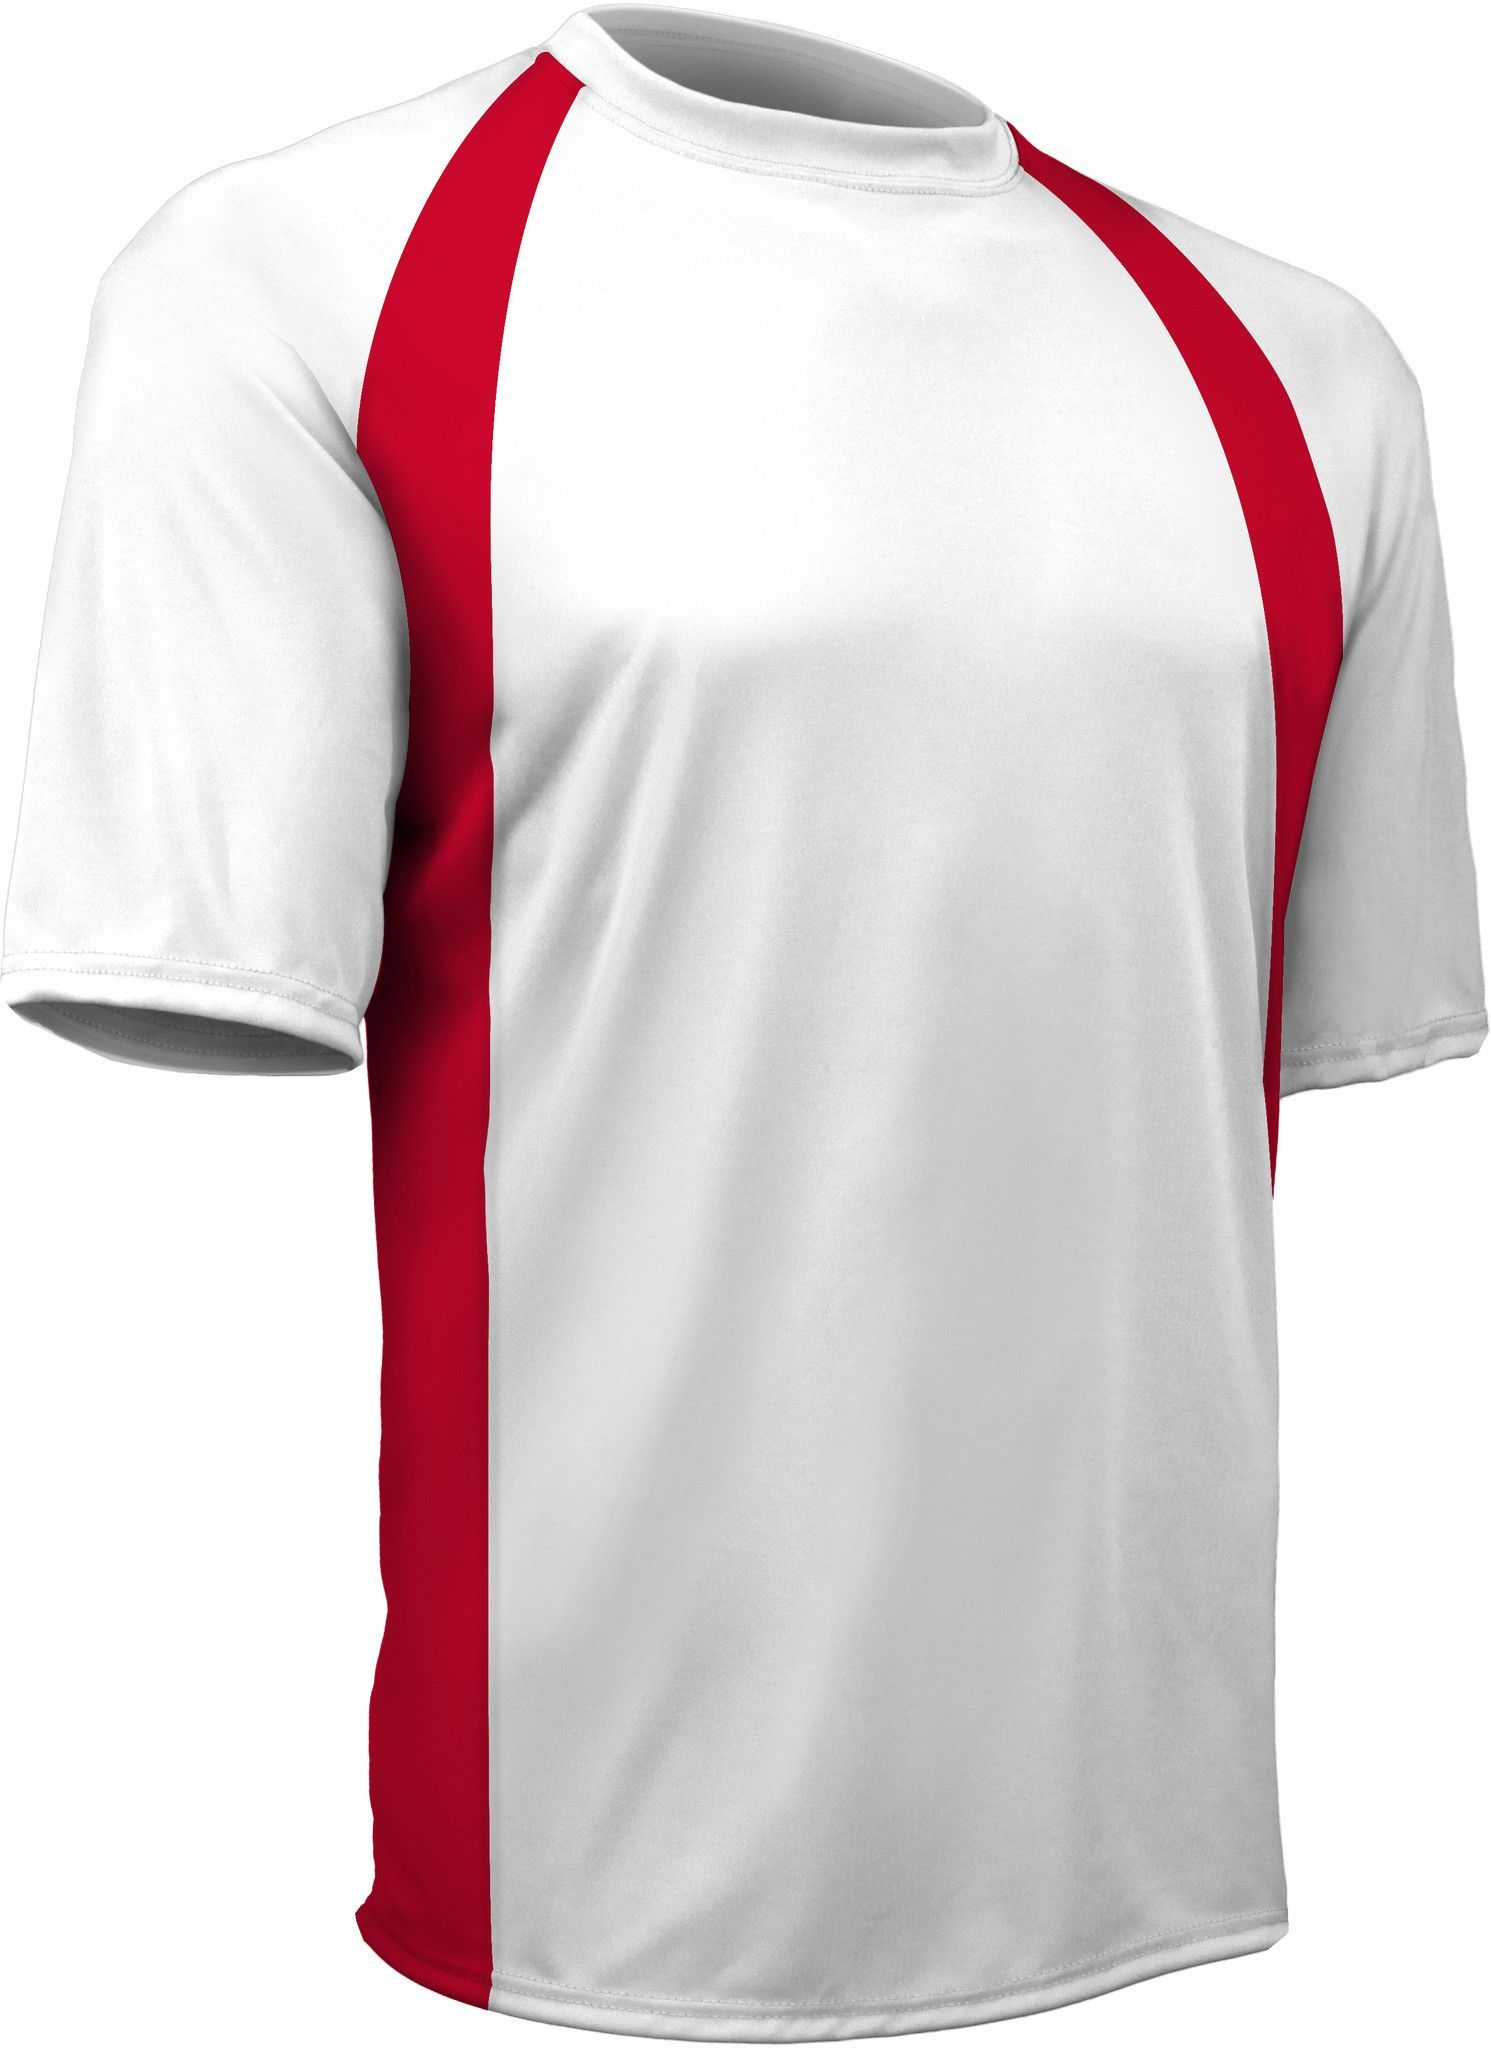 PT812S - Men's Full Panel Training Shirt